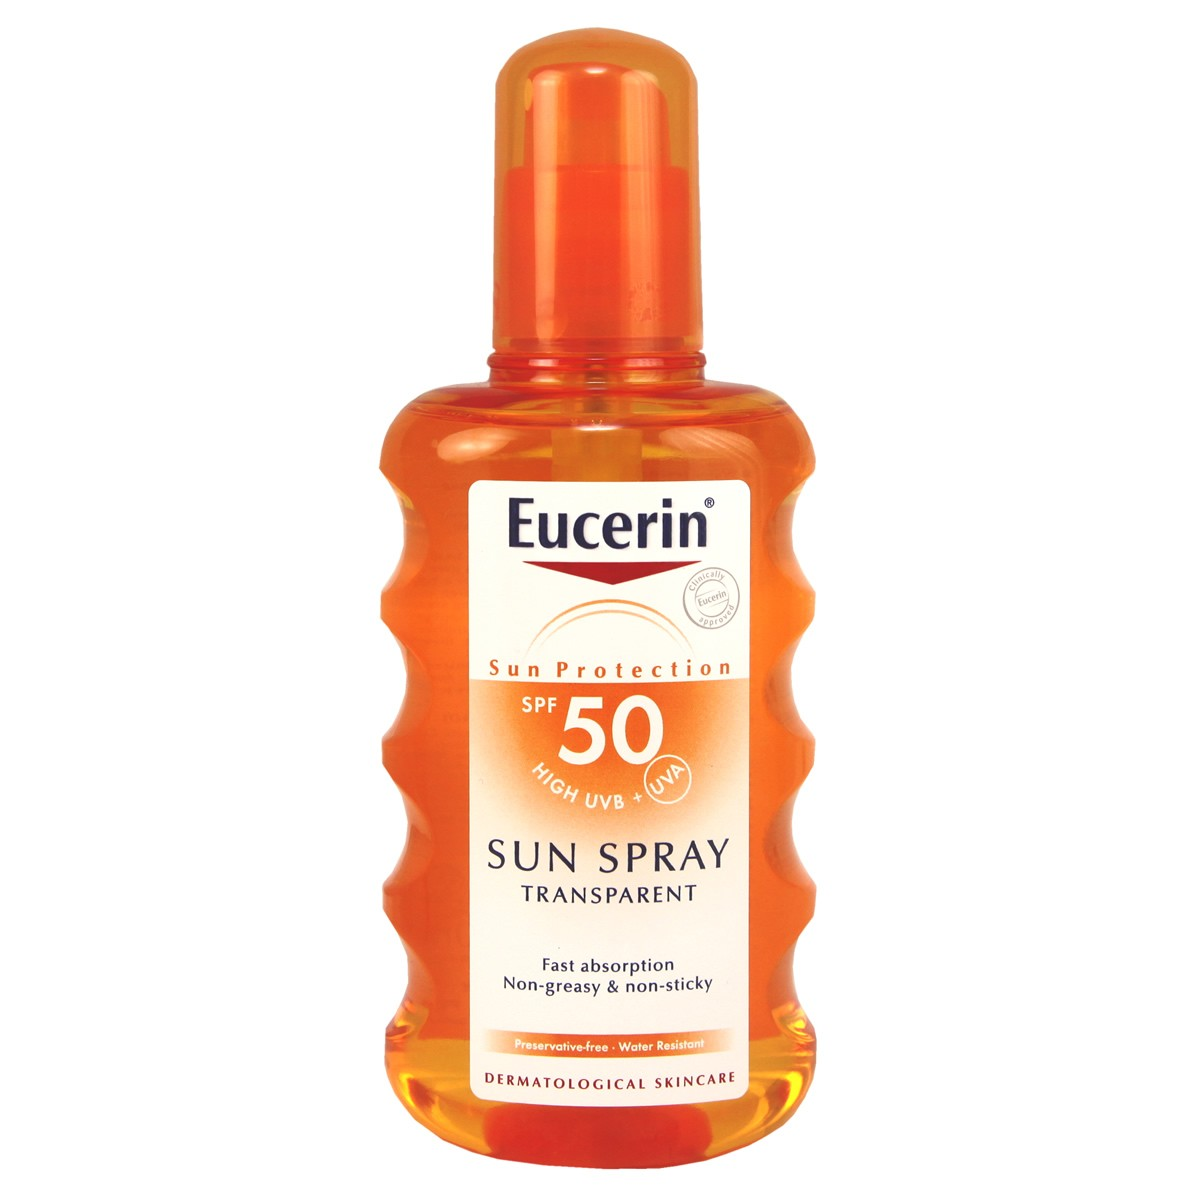 Eucerin Sun Spray Transparent SPF 50